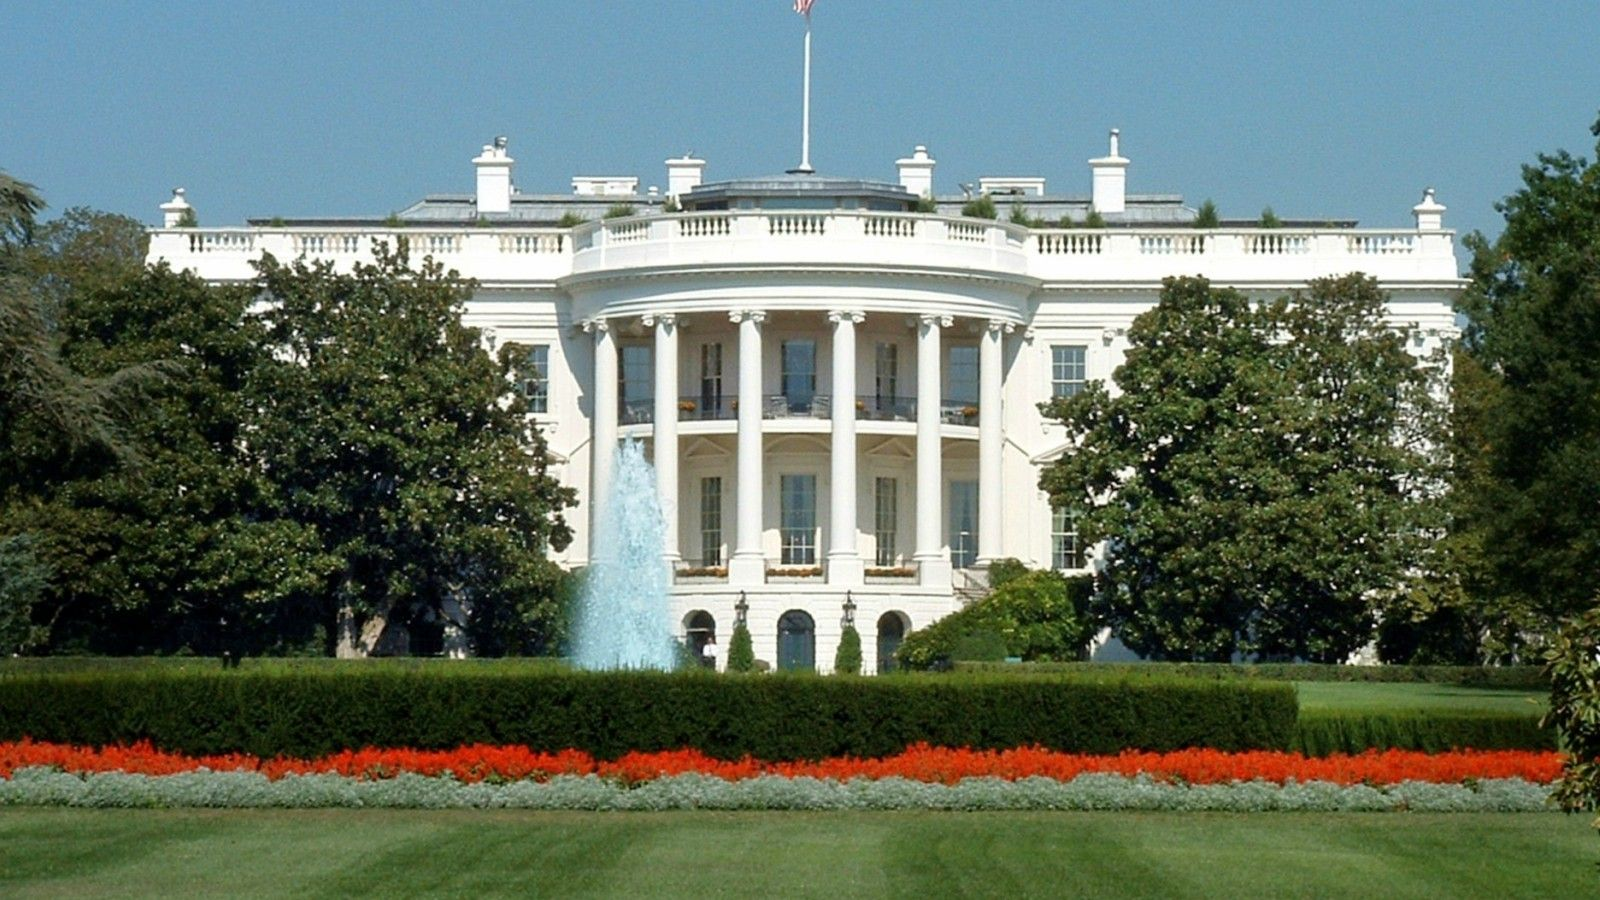 The White House | Things to do in Rockville